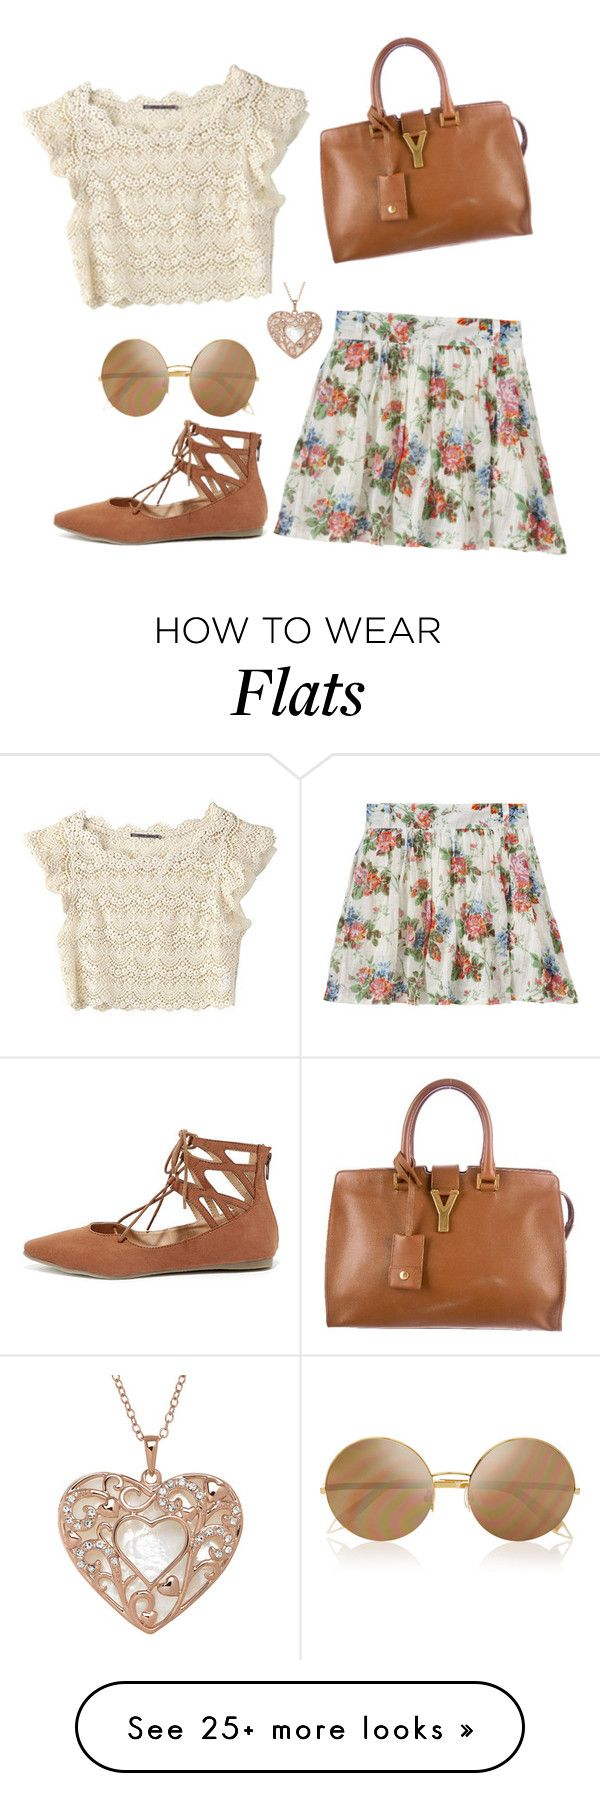 """Untitled #849"" by chanelover01 on Polyvore featuring Liliana, Victoria Beckham and Yves Saint Laurent"